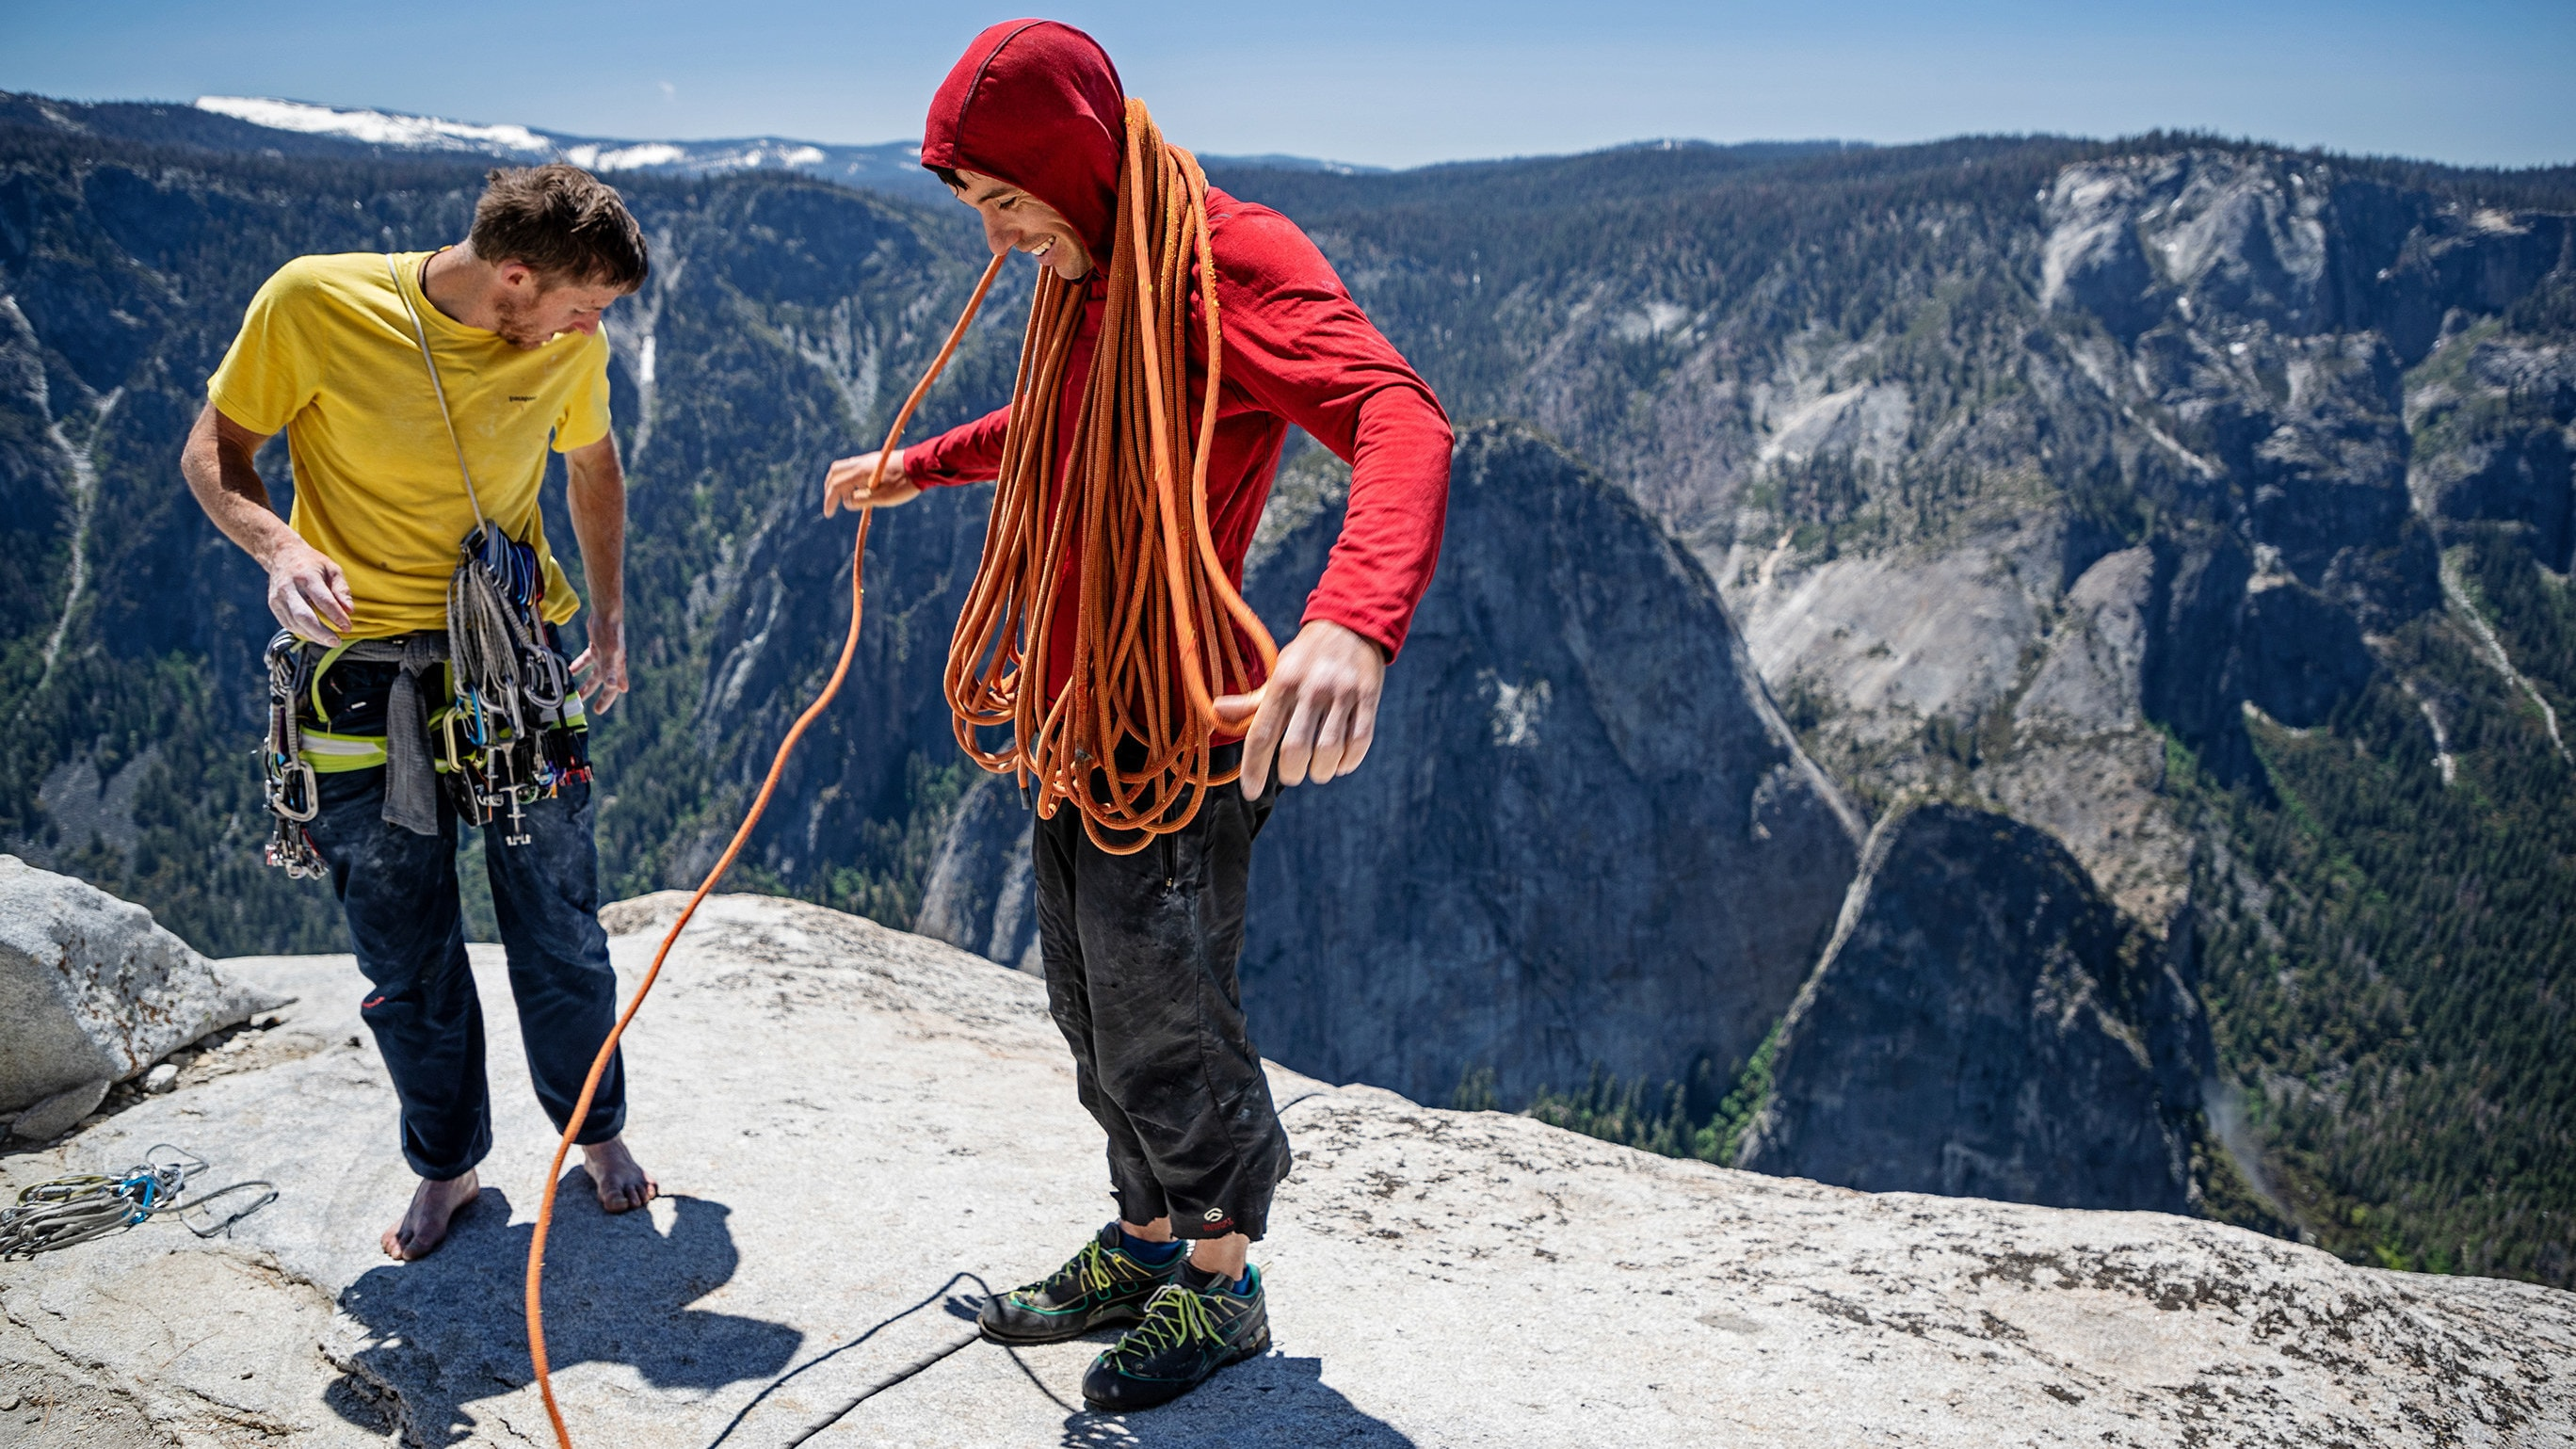 Alex Honnold and Tommy Caldwell organize their climbing gear at the top of the Freerider route on the summit of El Capitan in Yosemite National Park, California. They had just set a new speed record on the climb. (Photo by National Geographic/Jimmy Chin)